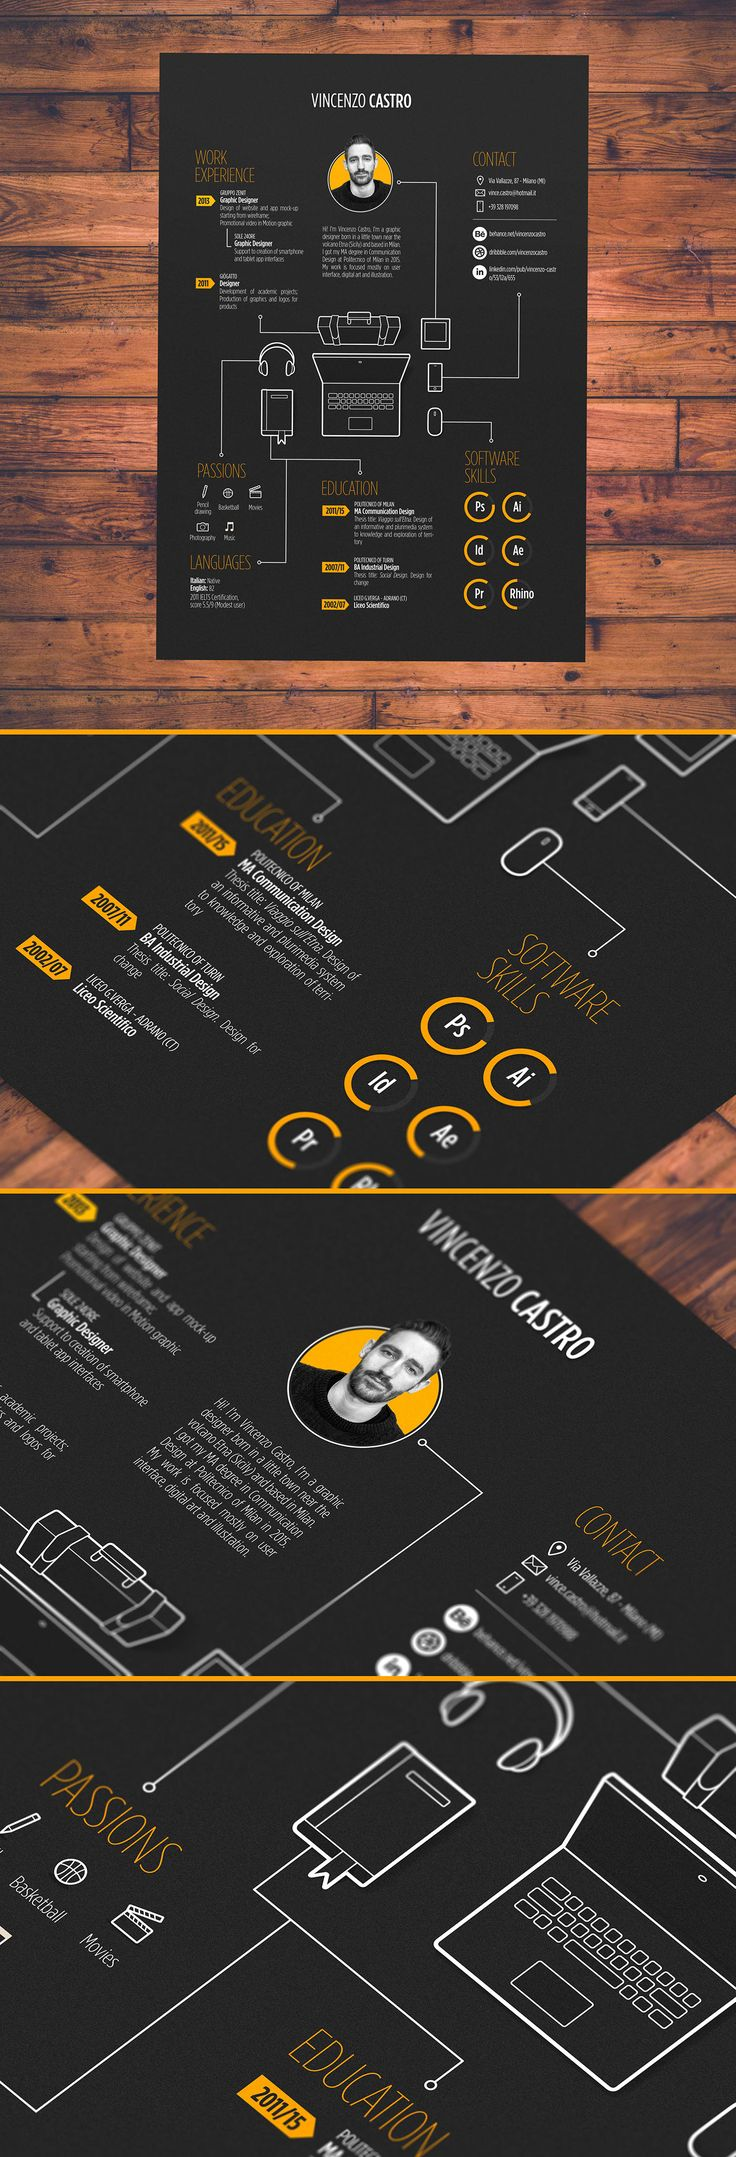 vincenzo castro graphic designer self promotion like the approach of a art designed cv and the layout feels tidy and collected